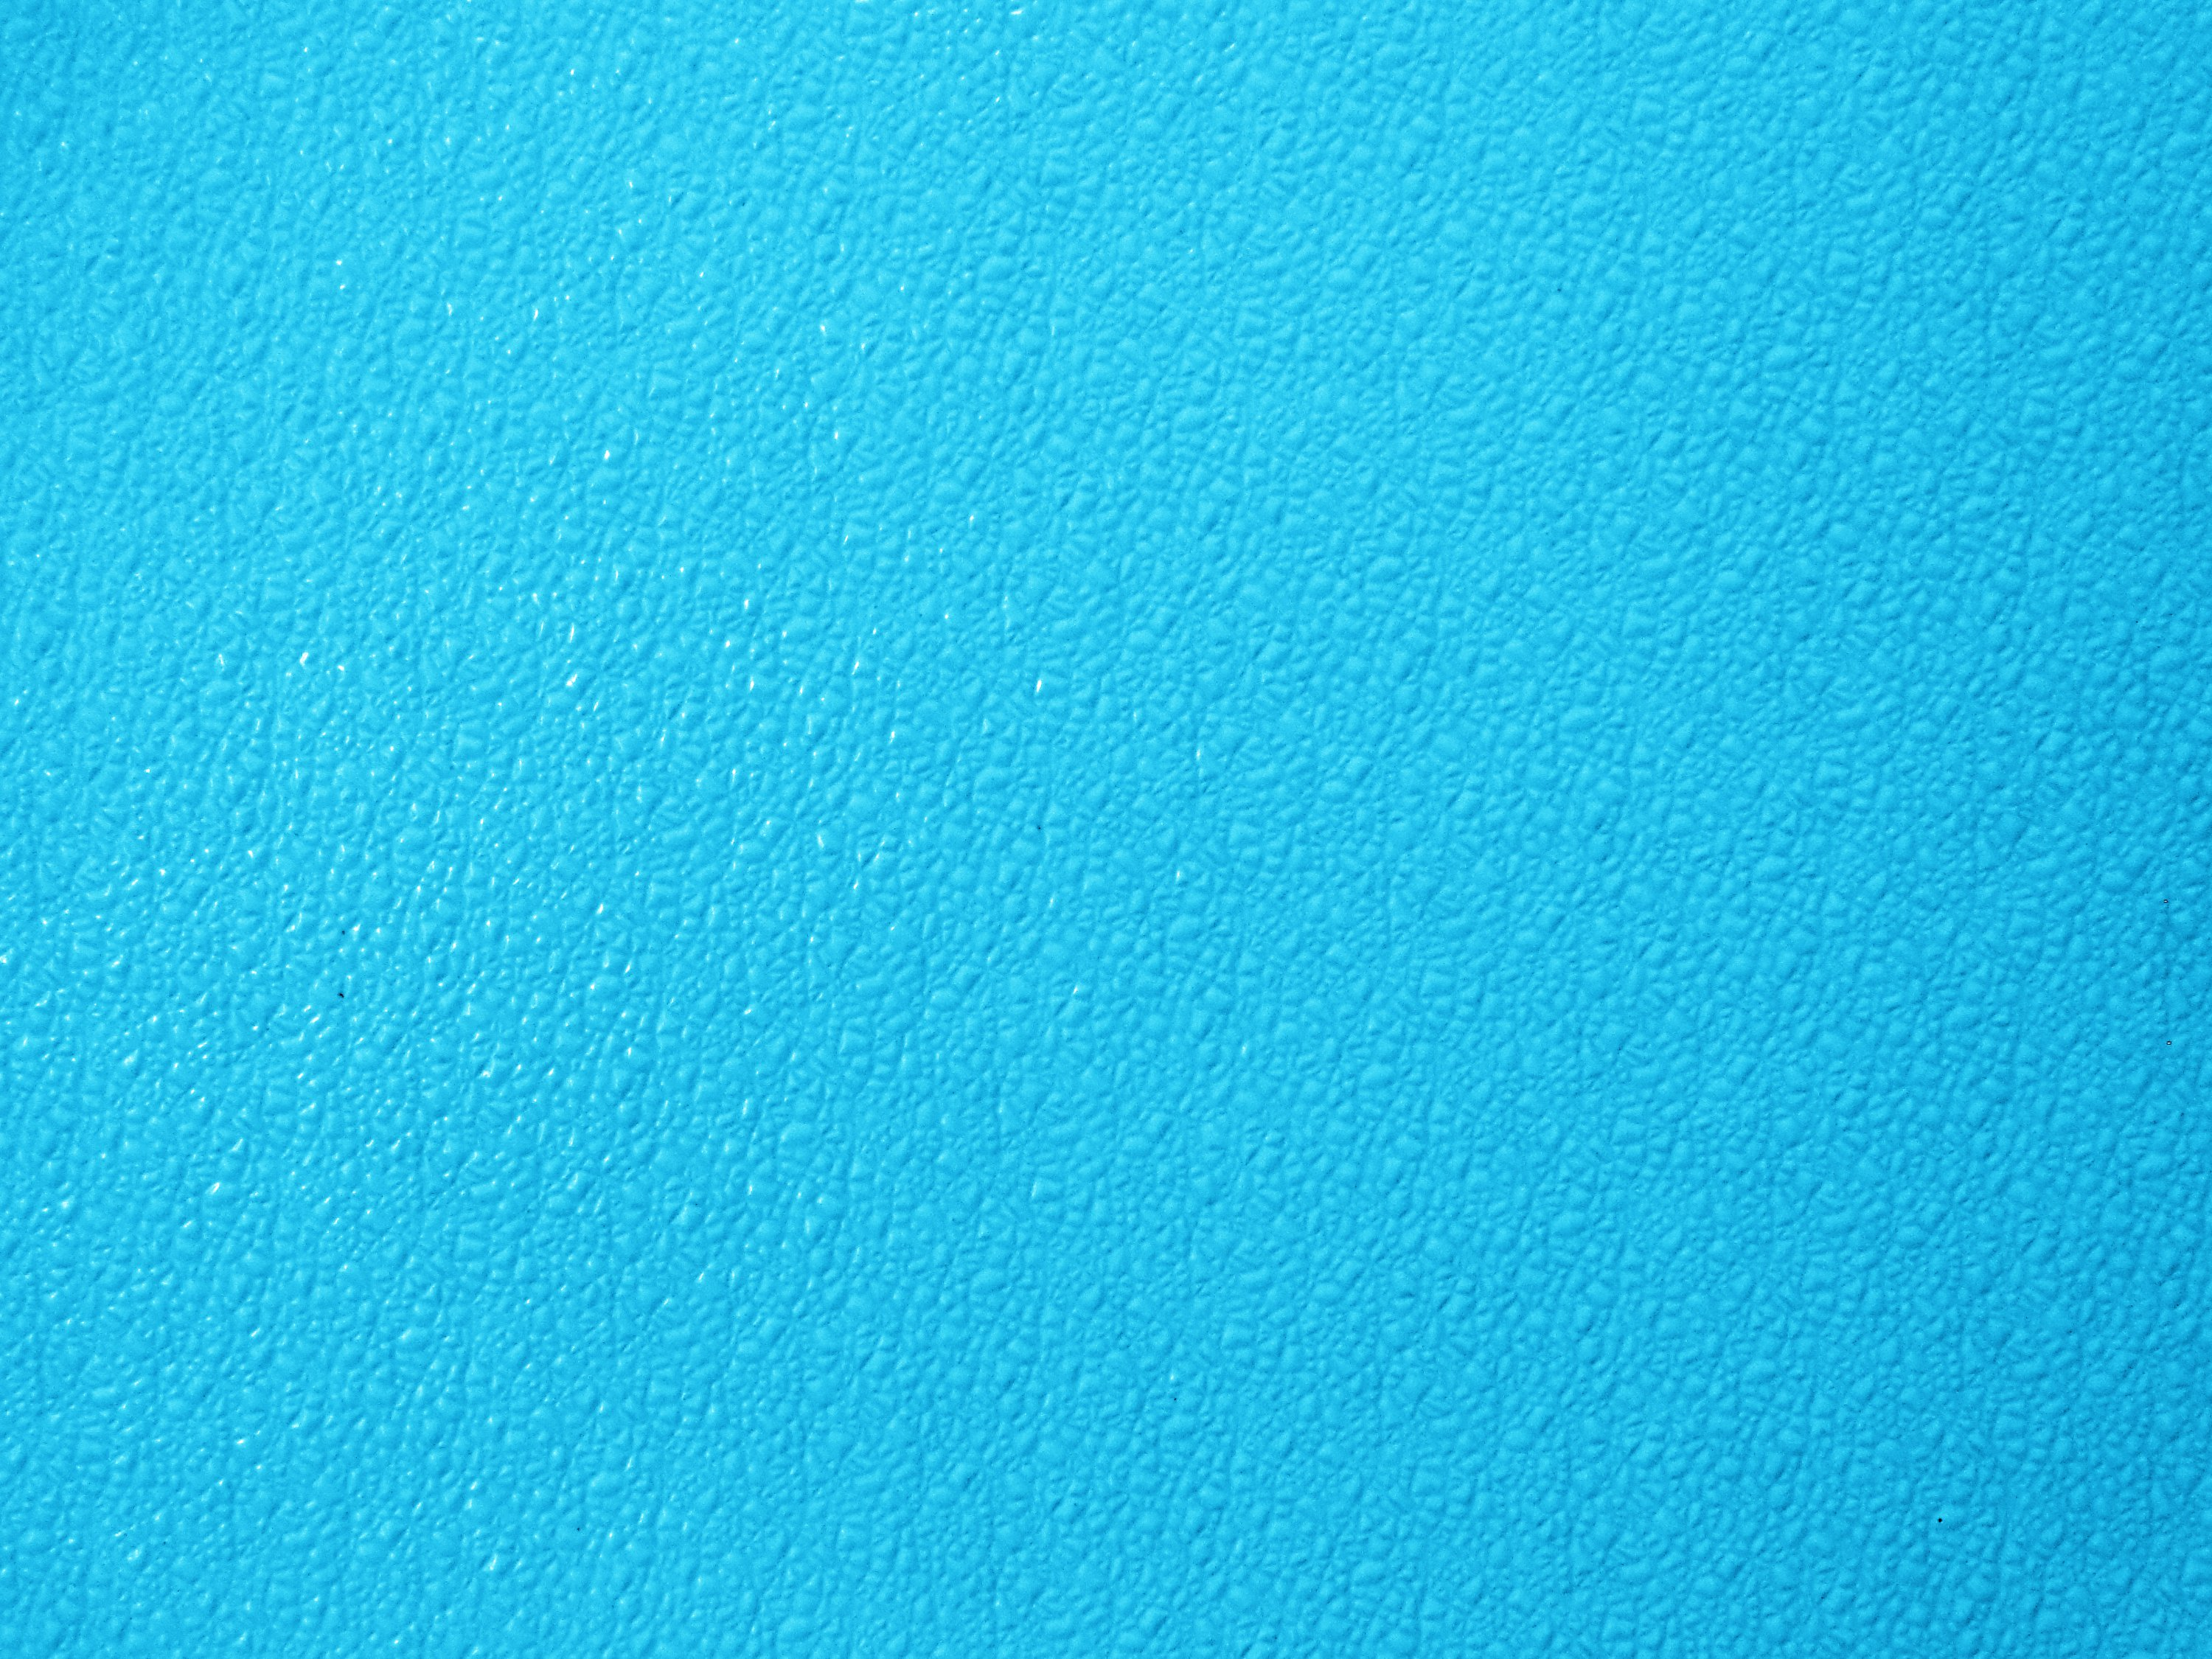 Bumpy Light Blue Plastic Texture Picture Free Photograph